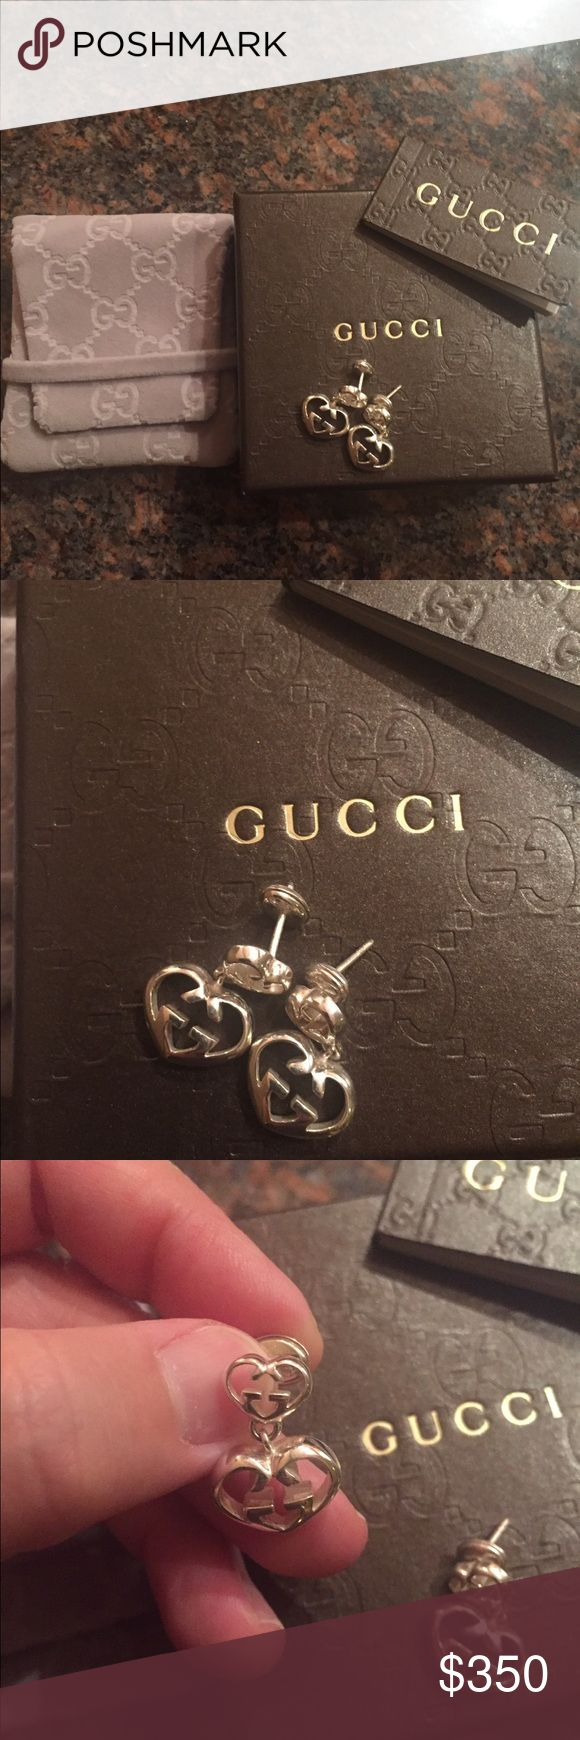 Authentic, new Gucci logo earrings Silver earrings from Gucci.  Complete with box, pouch, booklet.  Brand new Gucci Jewelry Earrings